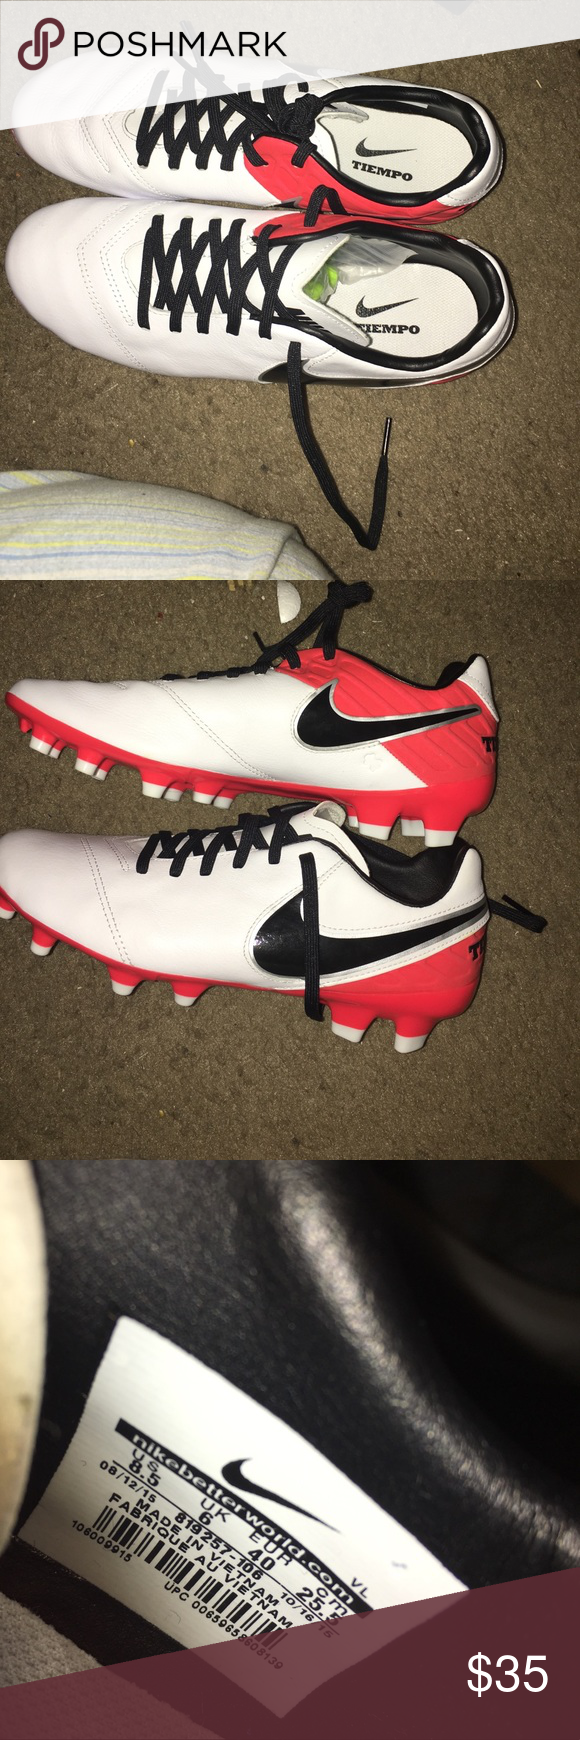 Nike tiempo cleats Brand new never worn size women 7 men they do run small  so it would best fit a 8 women and men Nike Shoes Athletic Shoes